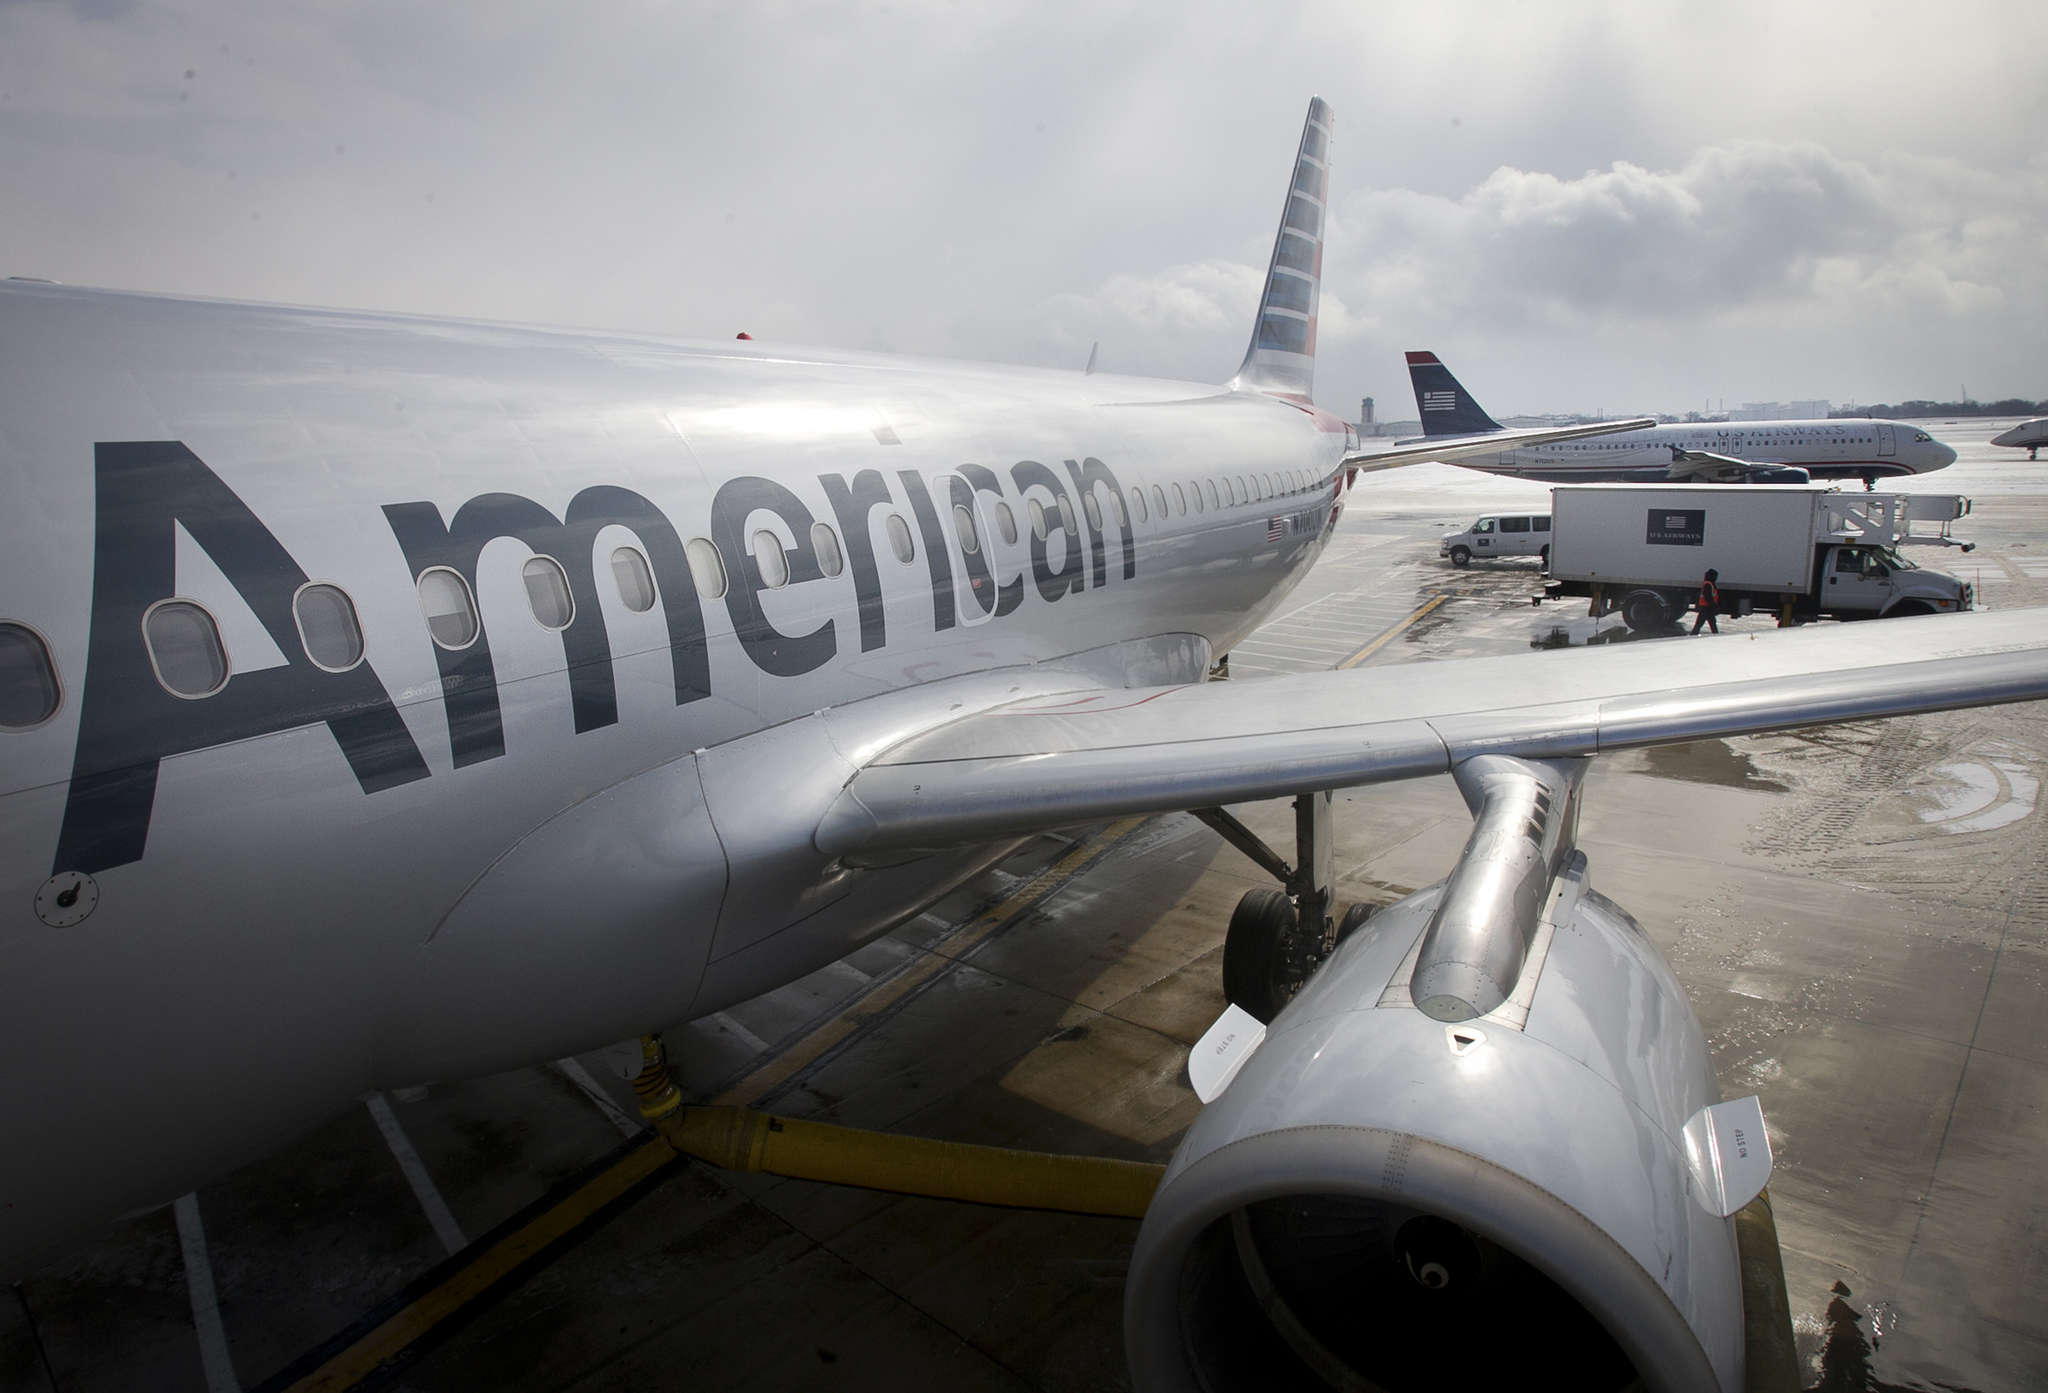 American Airlines flight cancellations rise in Philly, leaving passengers  stranded and forcing crews to work overtime